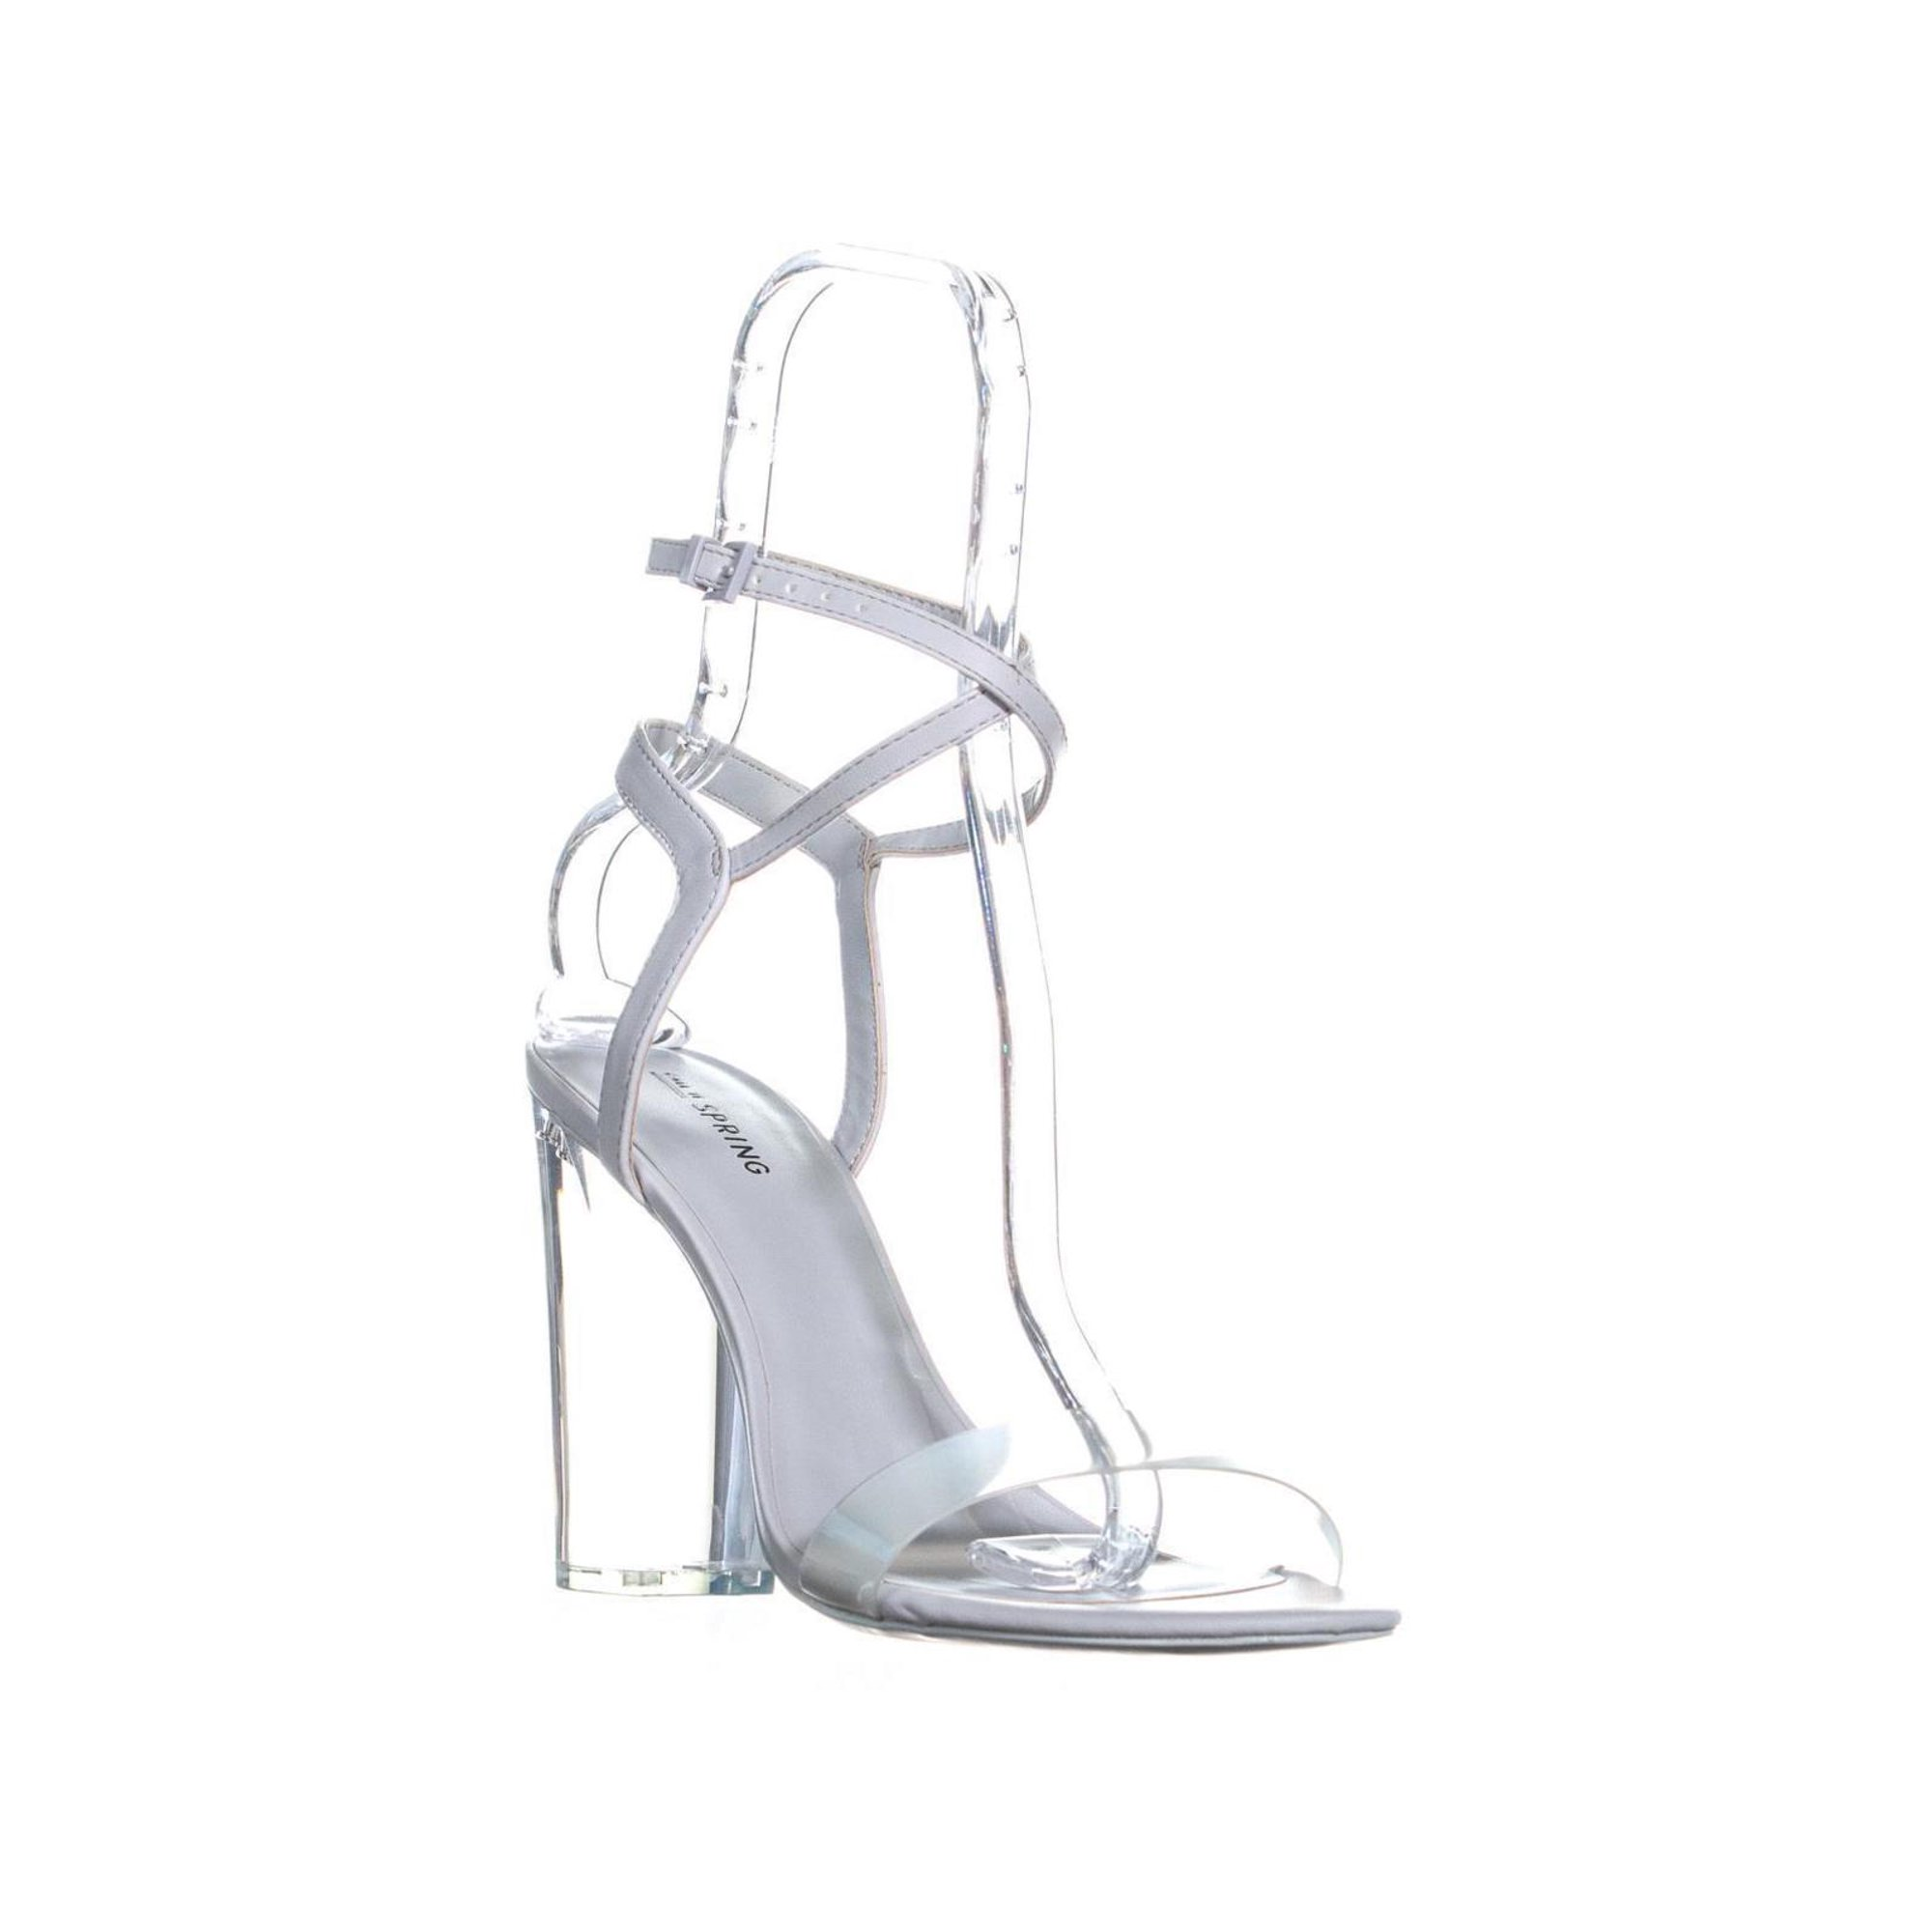 7ad0819c150 Call It Spring Ocalide Ankle Strap Block Heel Sandals, Blue ...